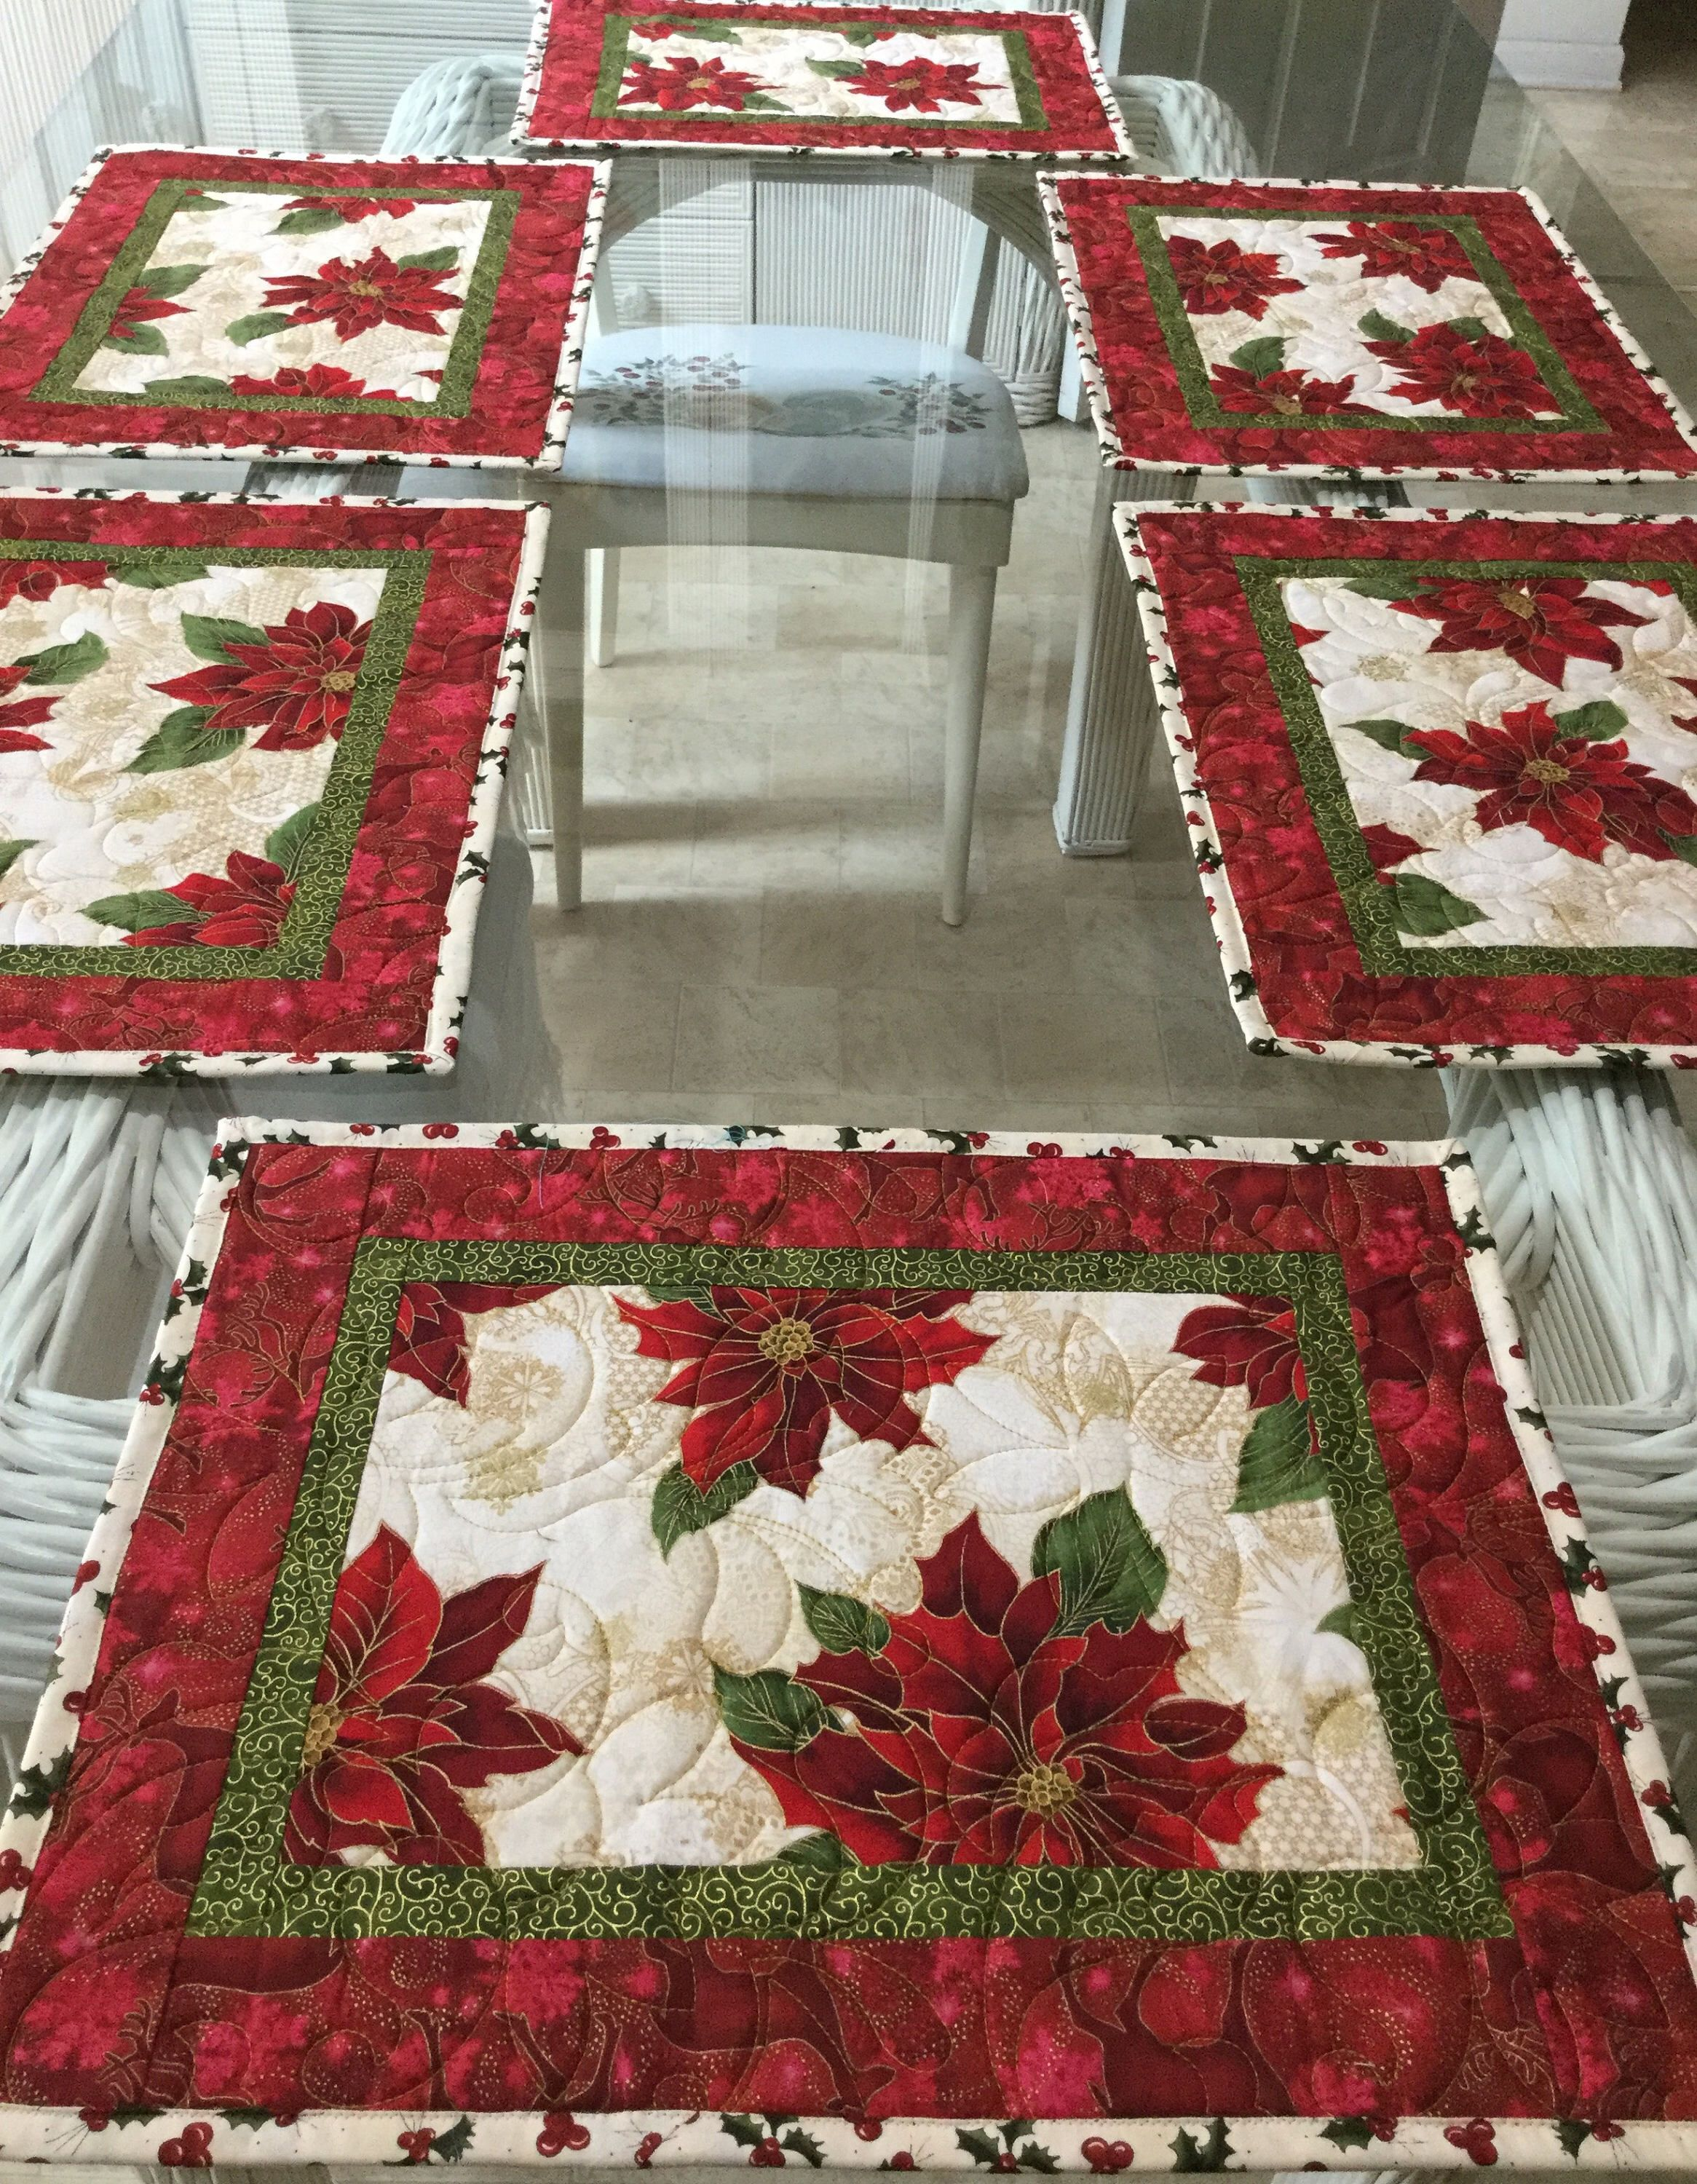 Christmas Placemats Quilted Placemats Poinsettia Placemats Sold In Sets Of 2 Table P Christmas Placemats Place Mats Quilted Quilted Table Runners Christmas